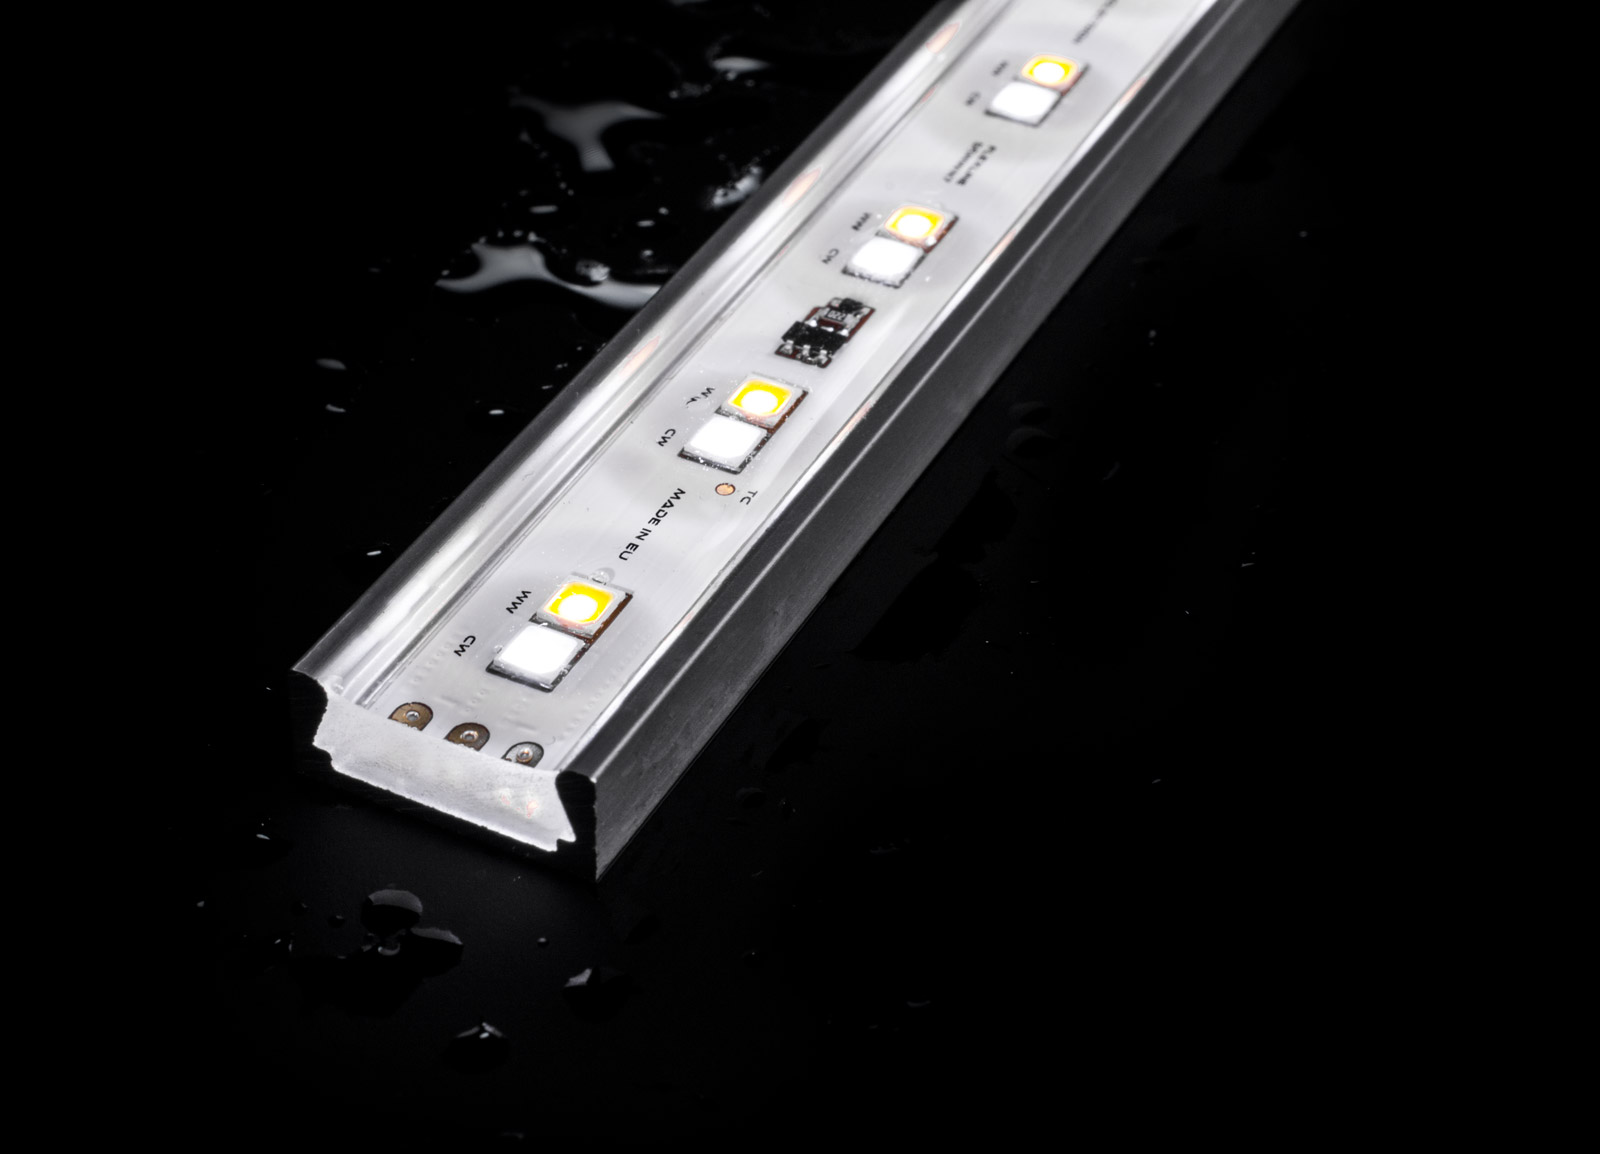 Outdoor Leds Lights Ip67 outdoor non flexible nichia led linear lights ip67 rated outdoor led linear lights with nichia leds workwithnaturefo